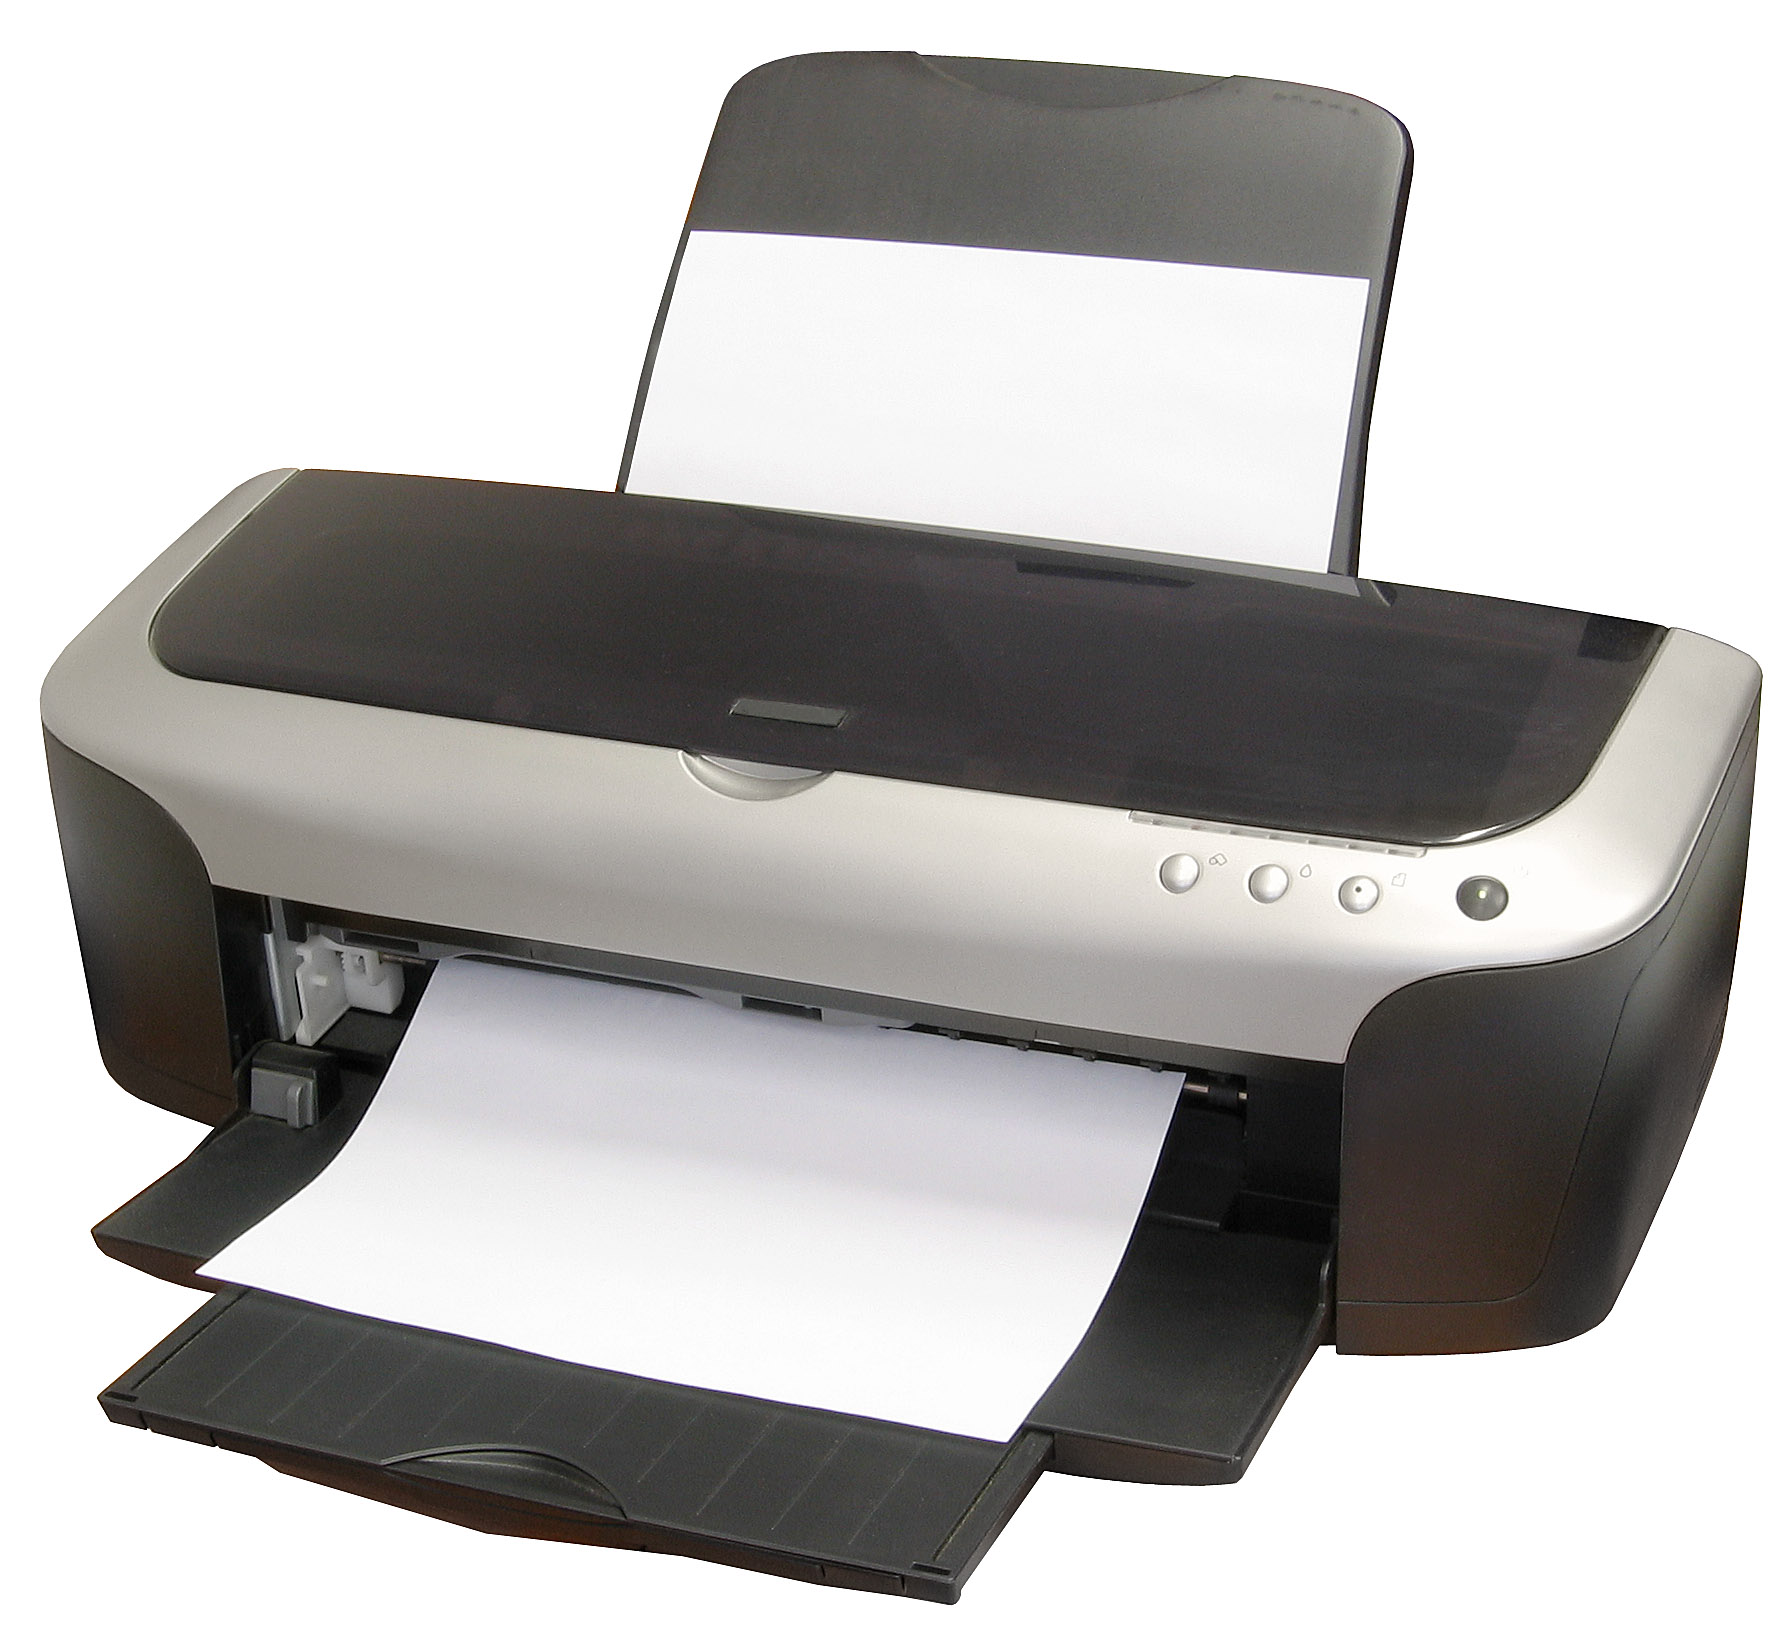 inkjet-vs-laser-printer